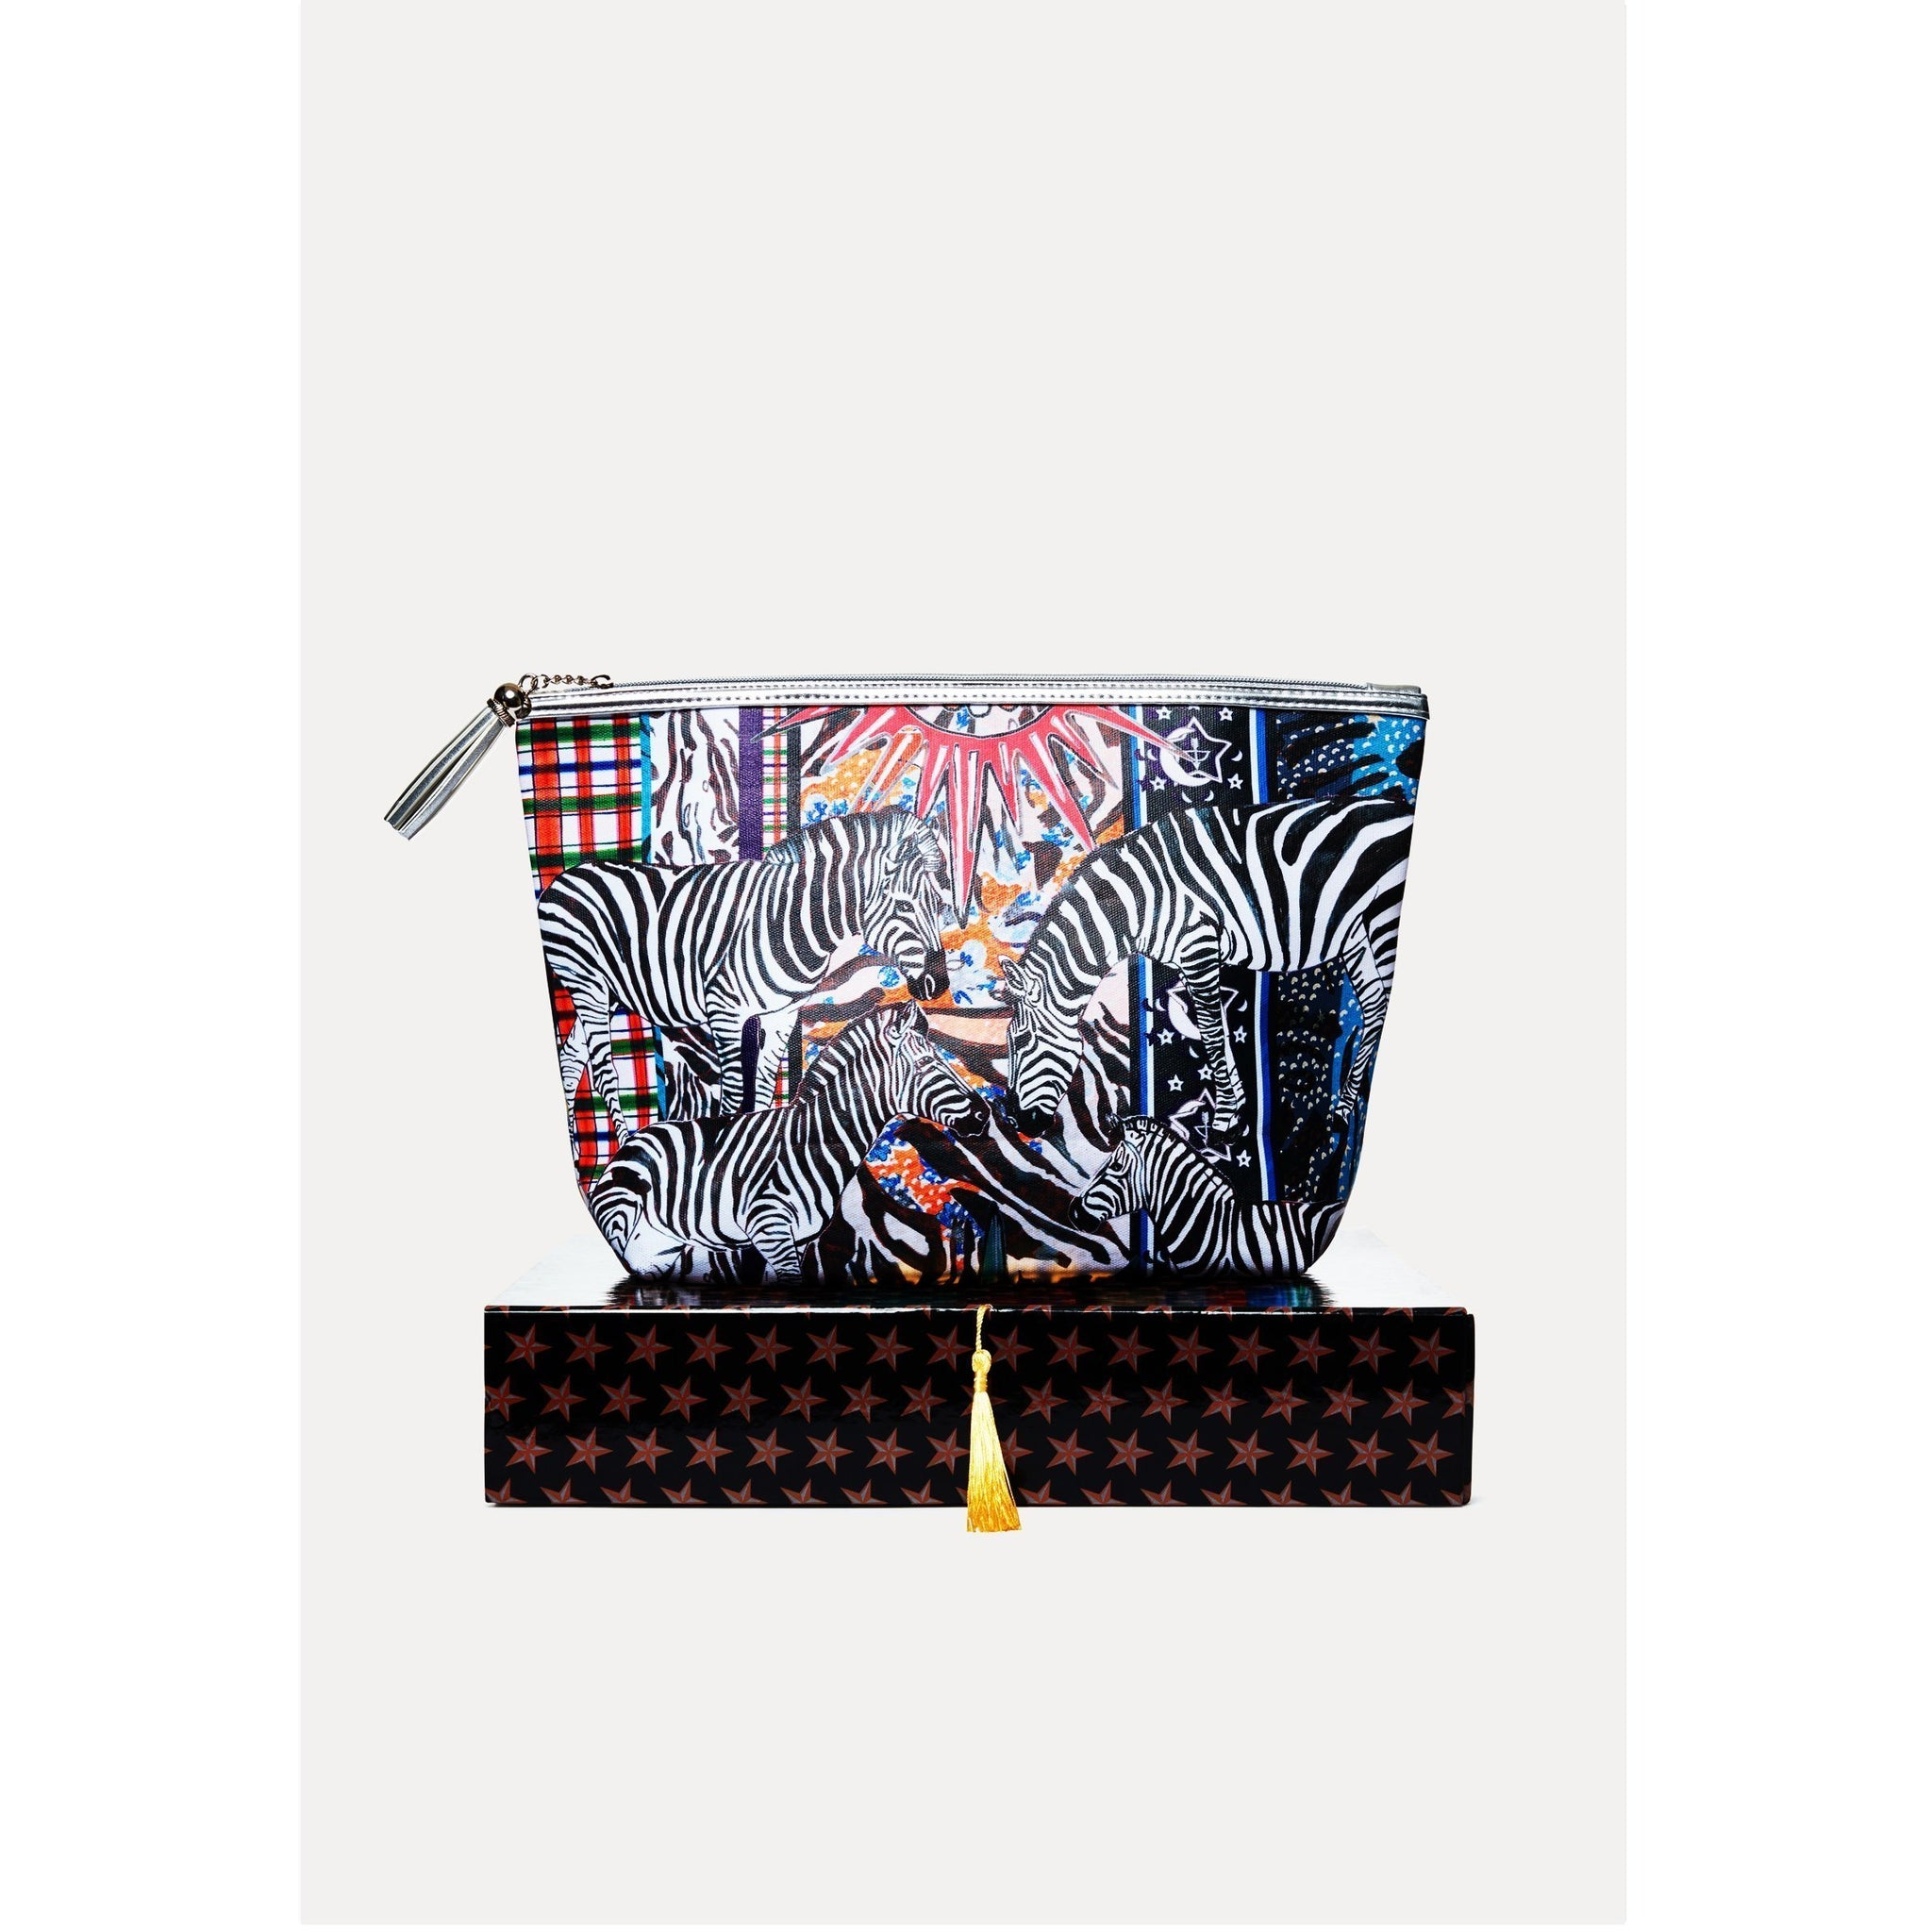 ACID%20ZEBRA%20XL%20WASHBAG%20ON%20BOX.jpg